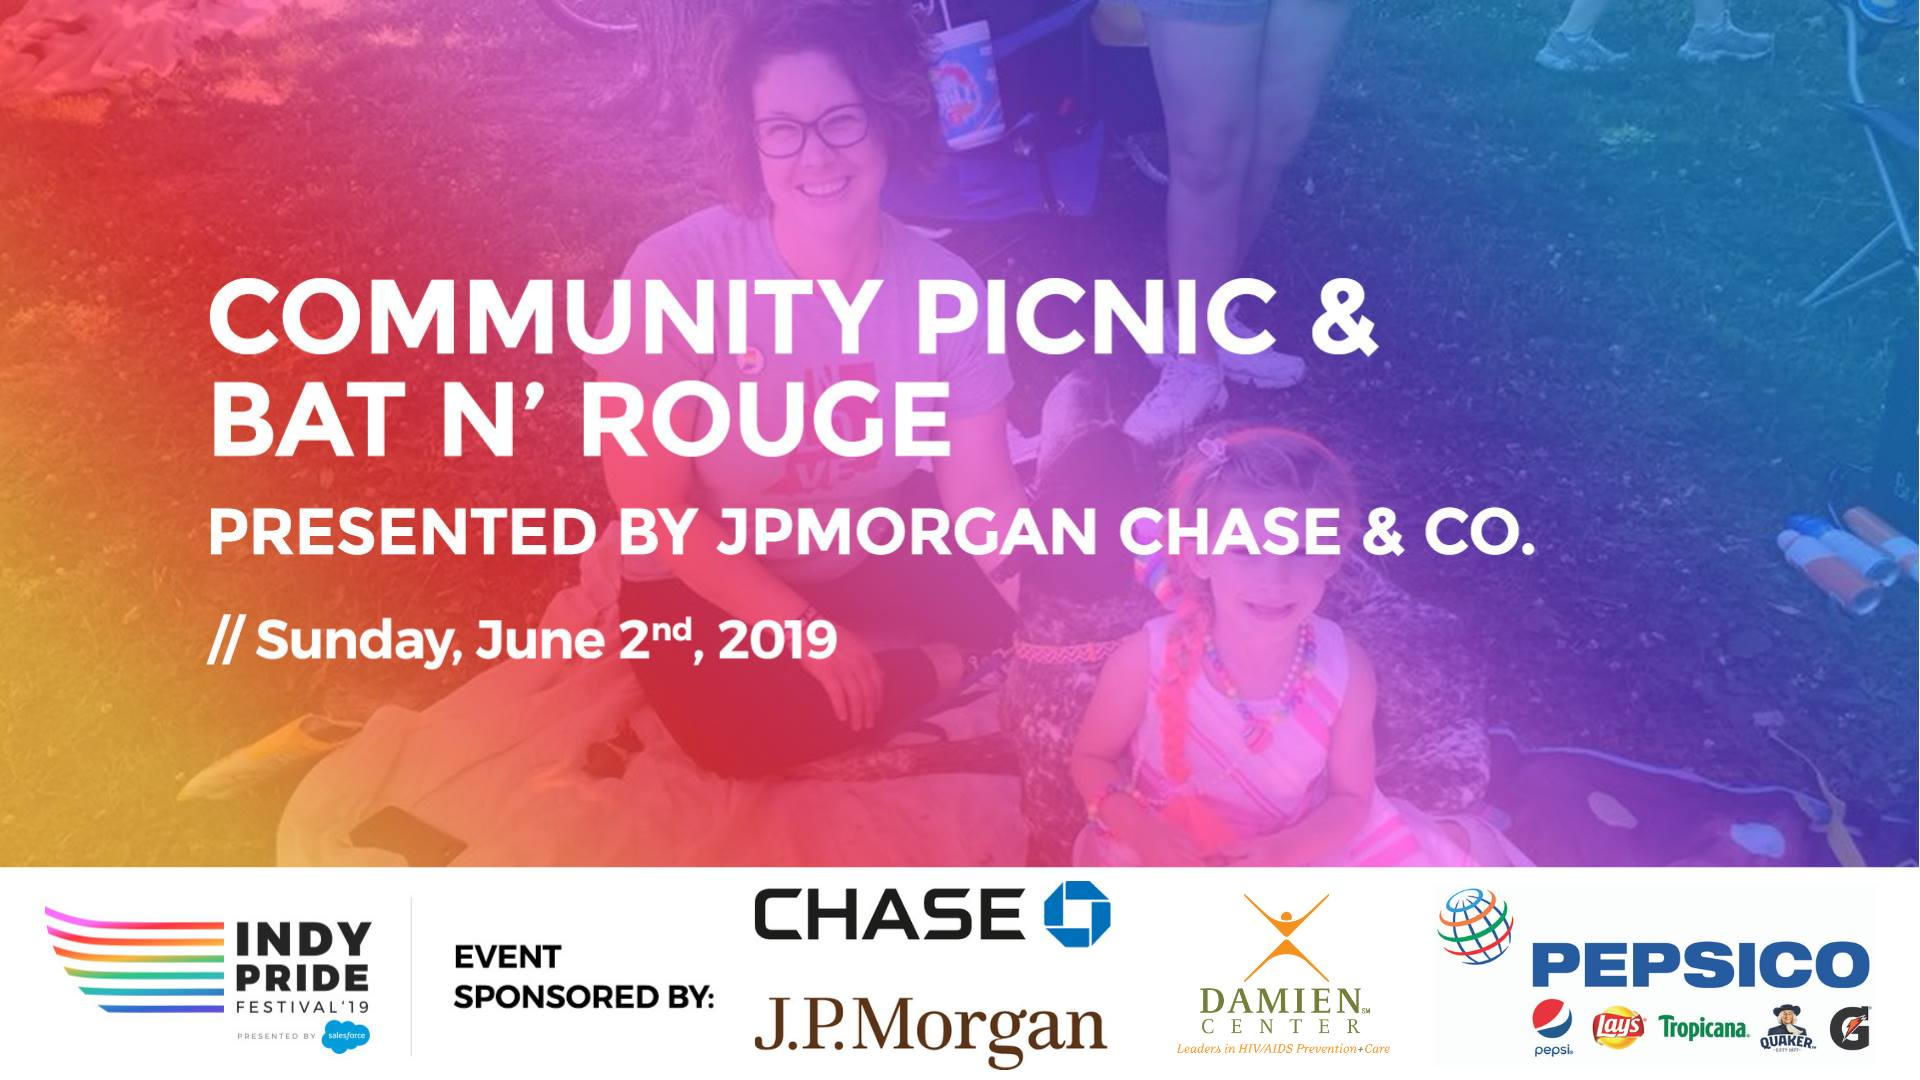 Community Picnic & Bat N' Rouge Presented by JP Morgan Chase | Indy